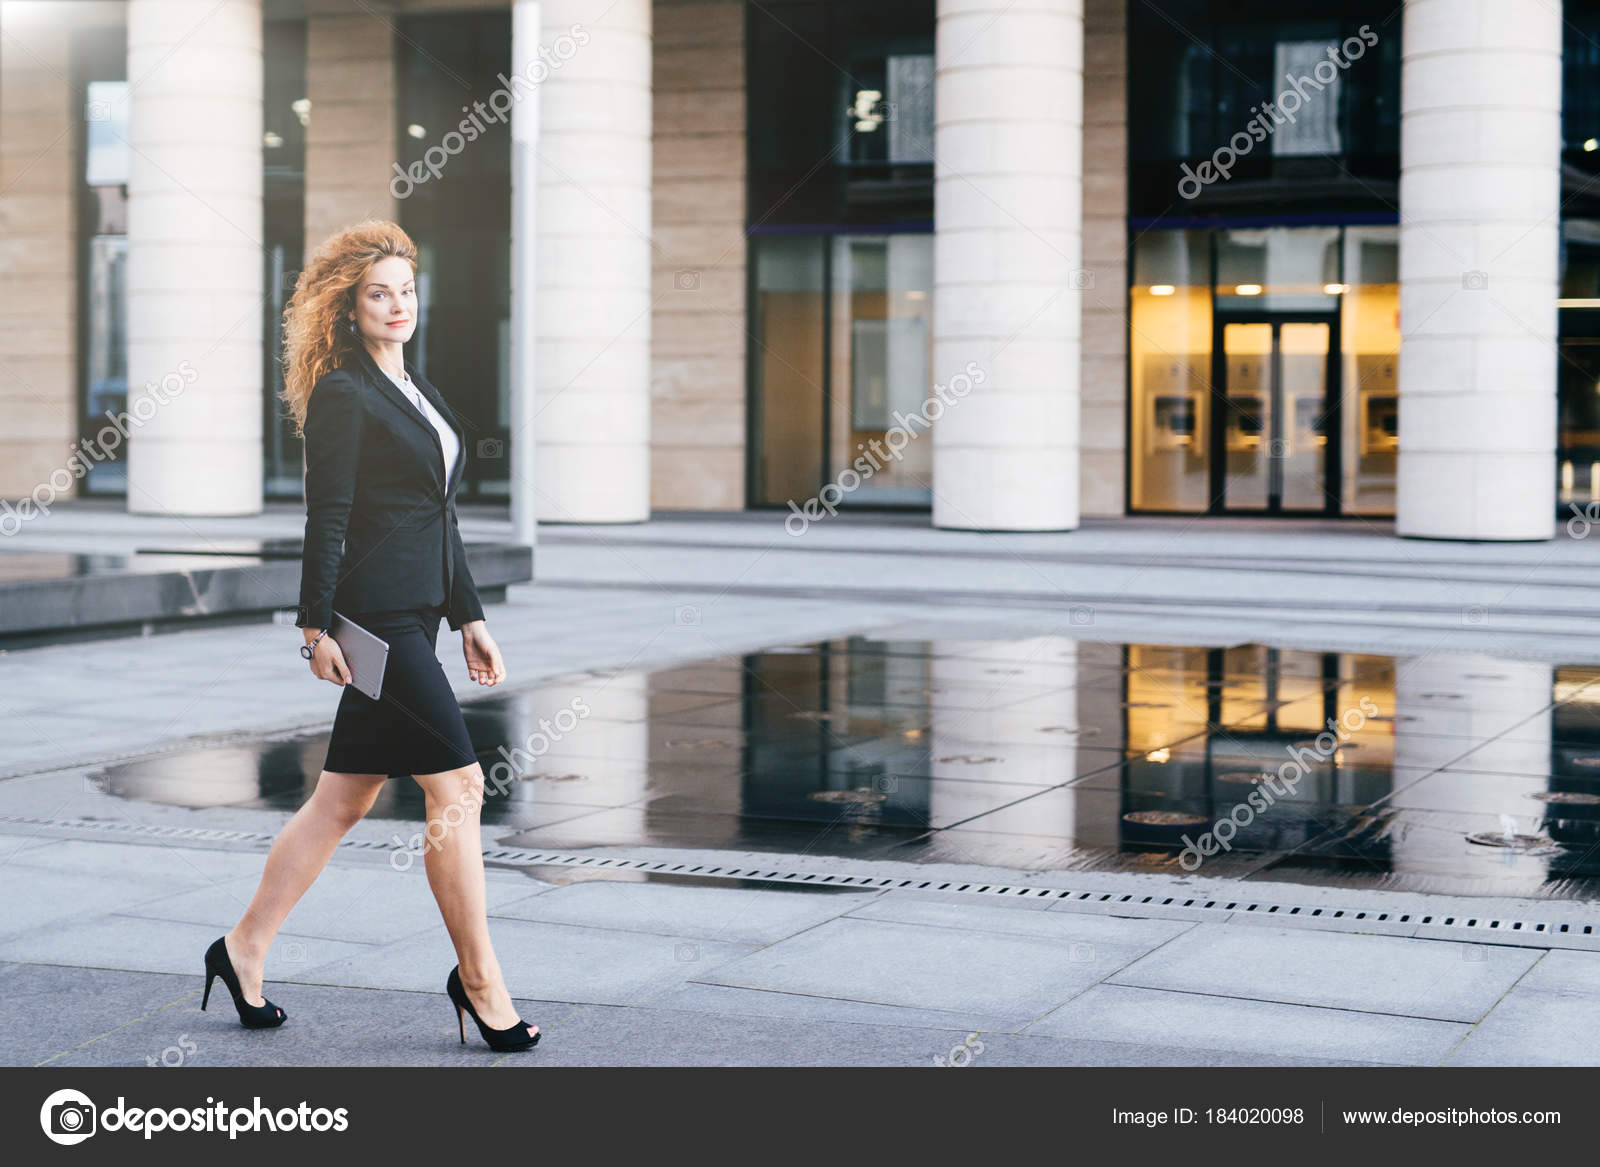 dde4e73a1362f Elegant slim woman in black suit and high-heeled shoes, holding tablet in  hands going for work. Businesswoman ...